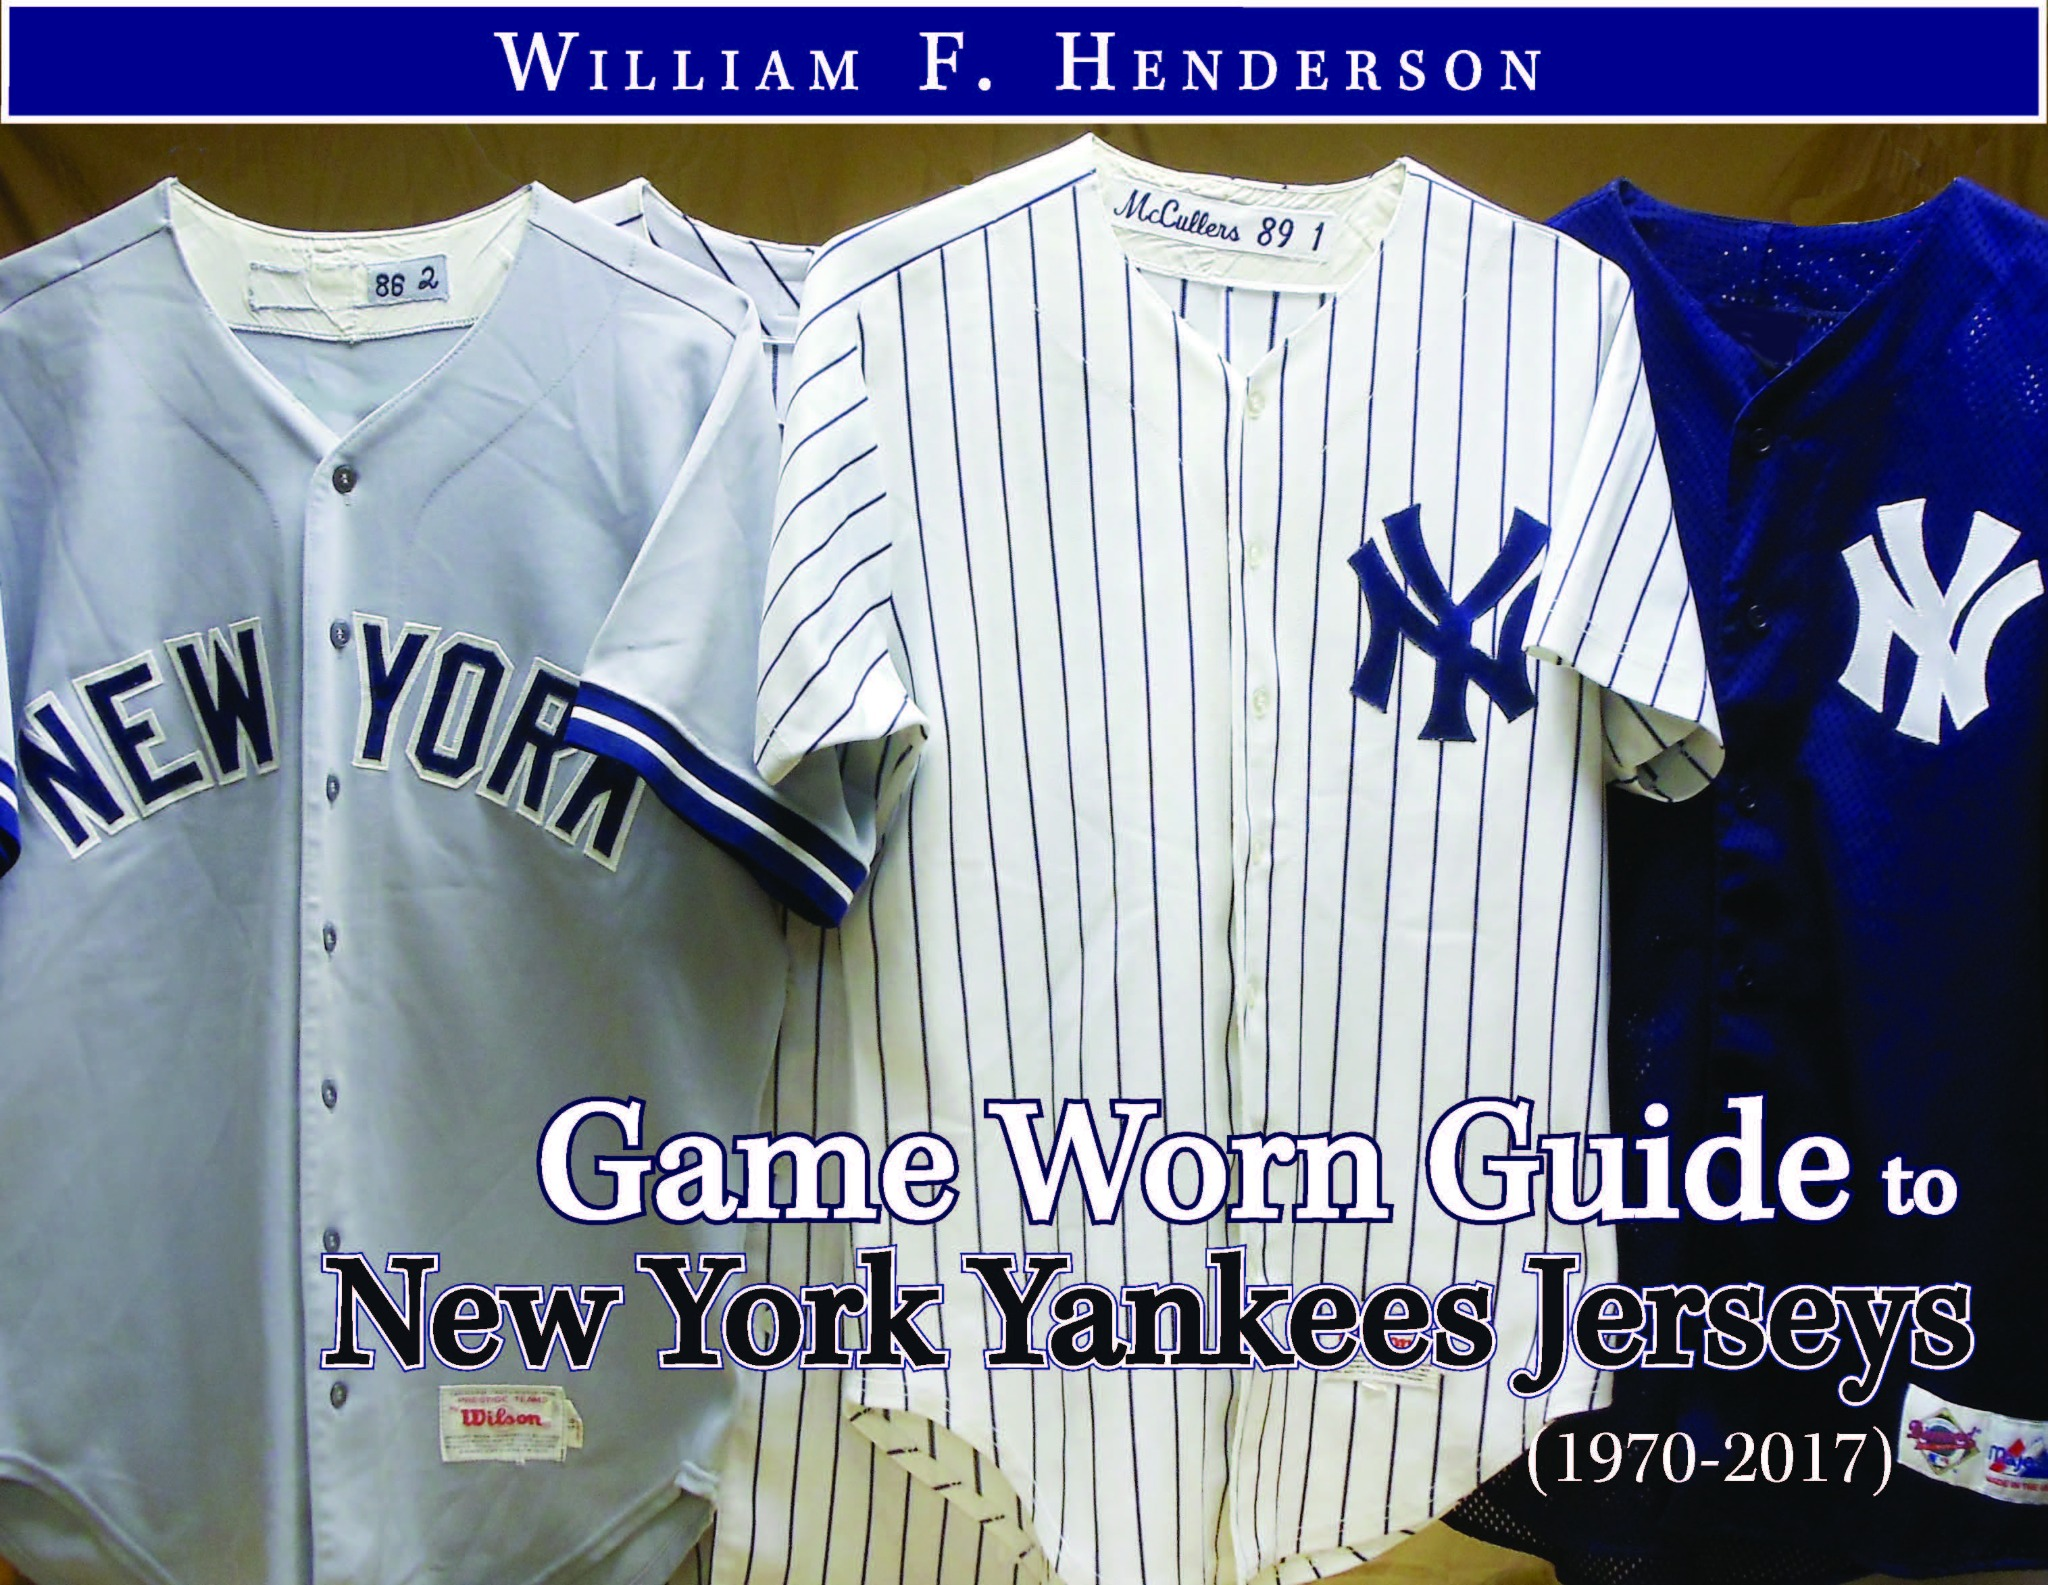 Game Worn Guide to New York Yankees Jerseys (1970-2017)